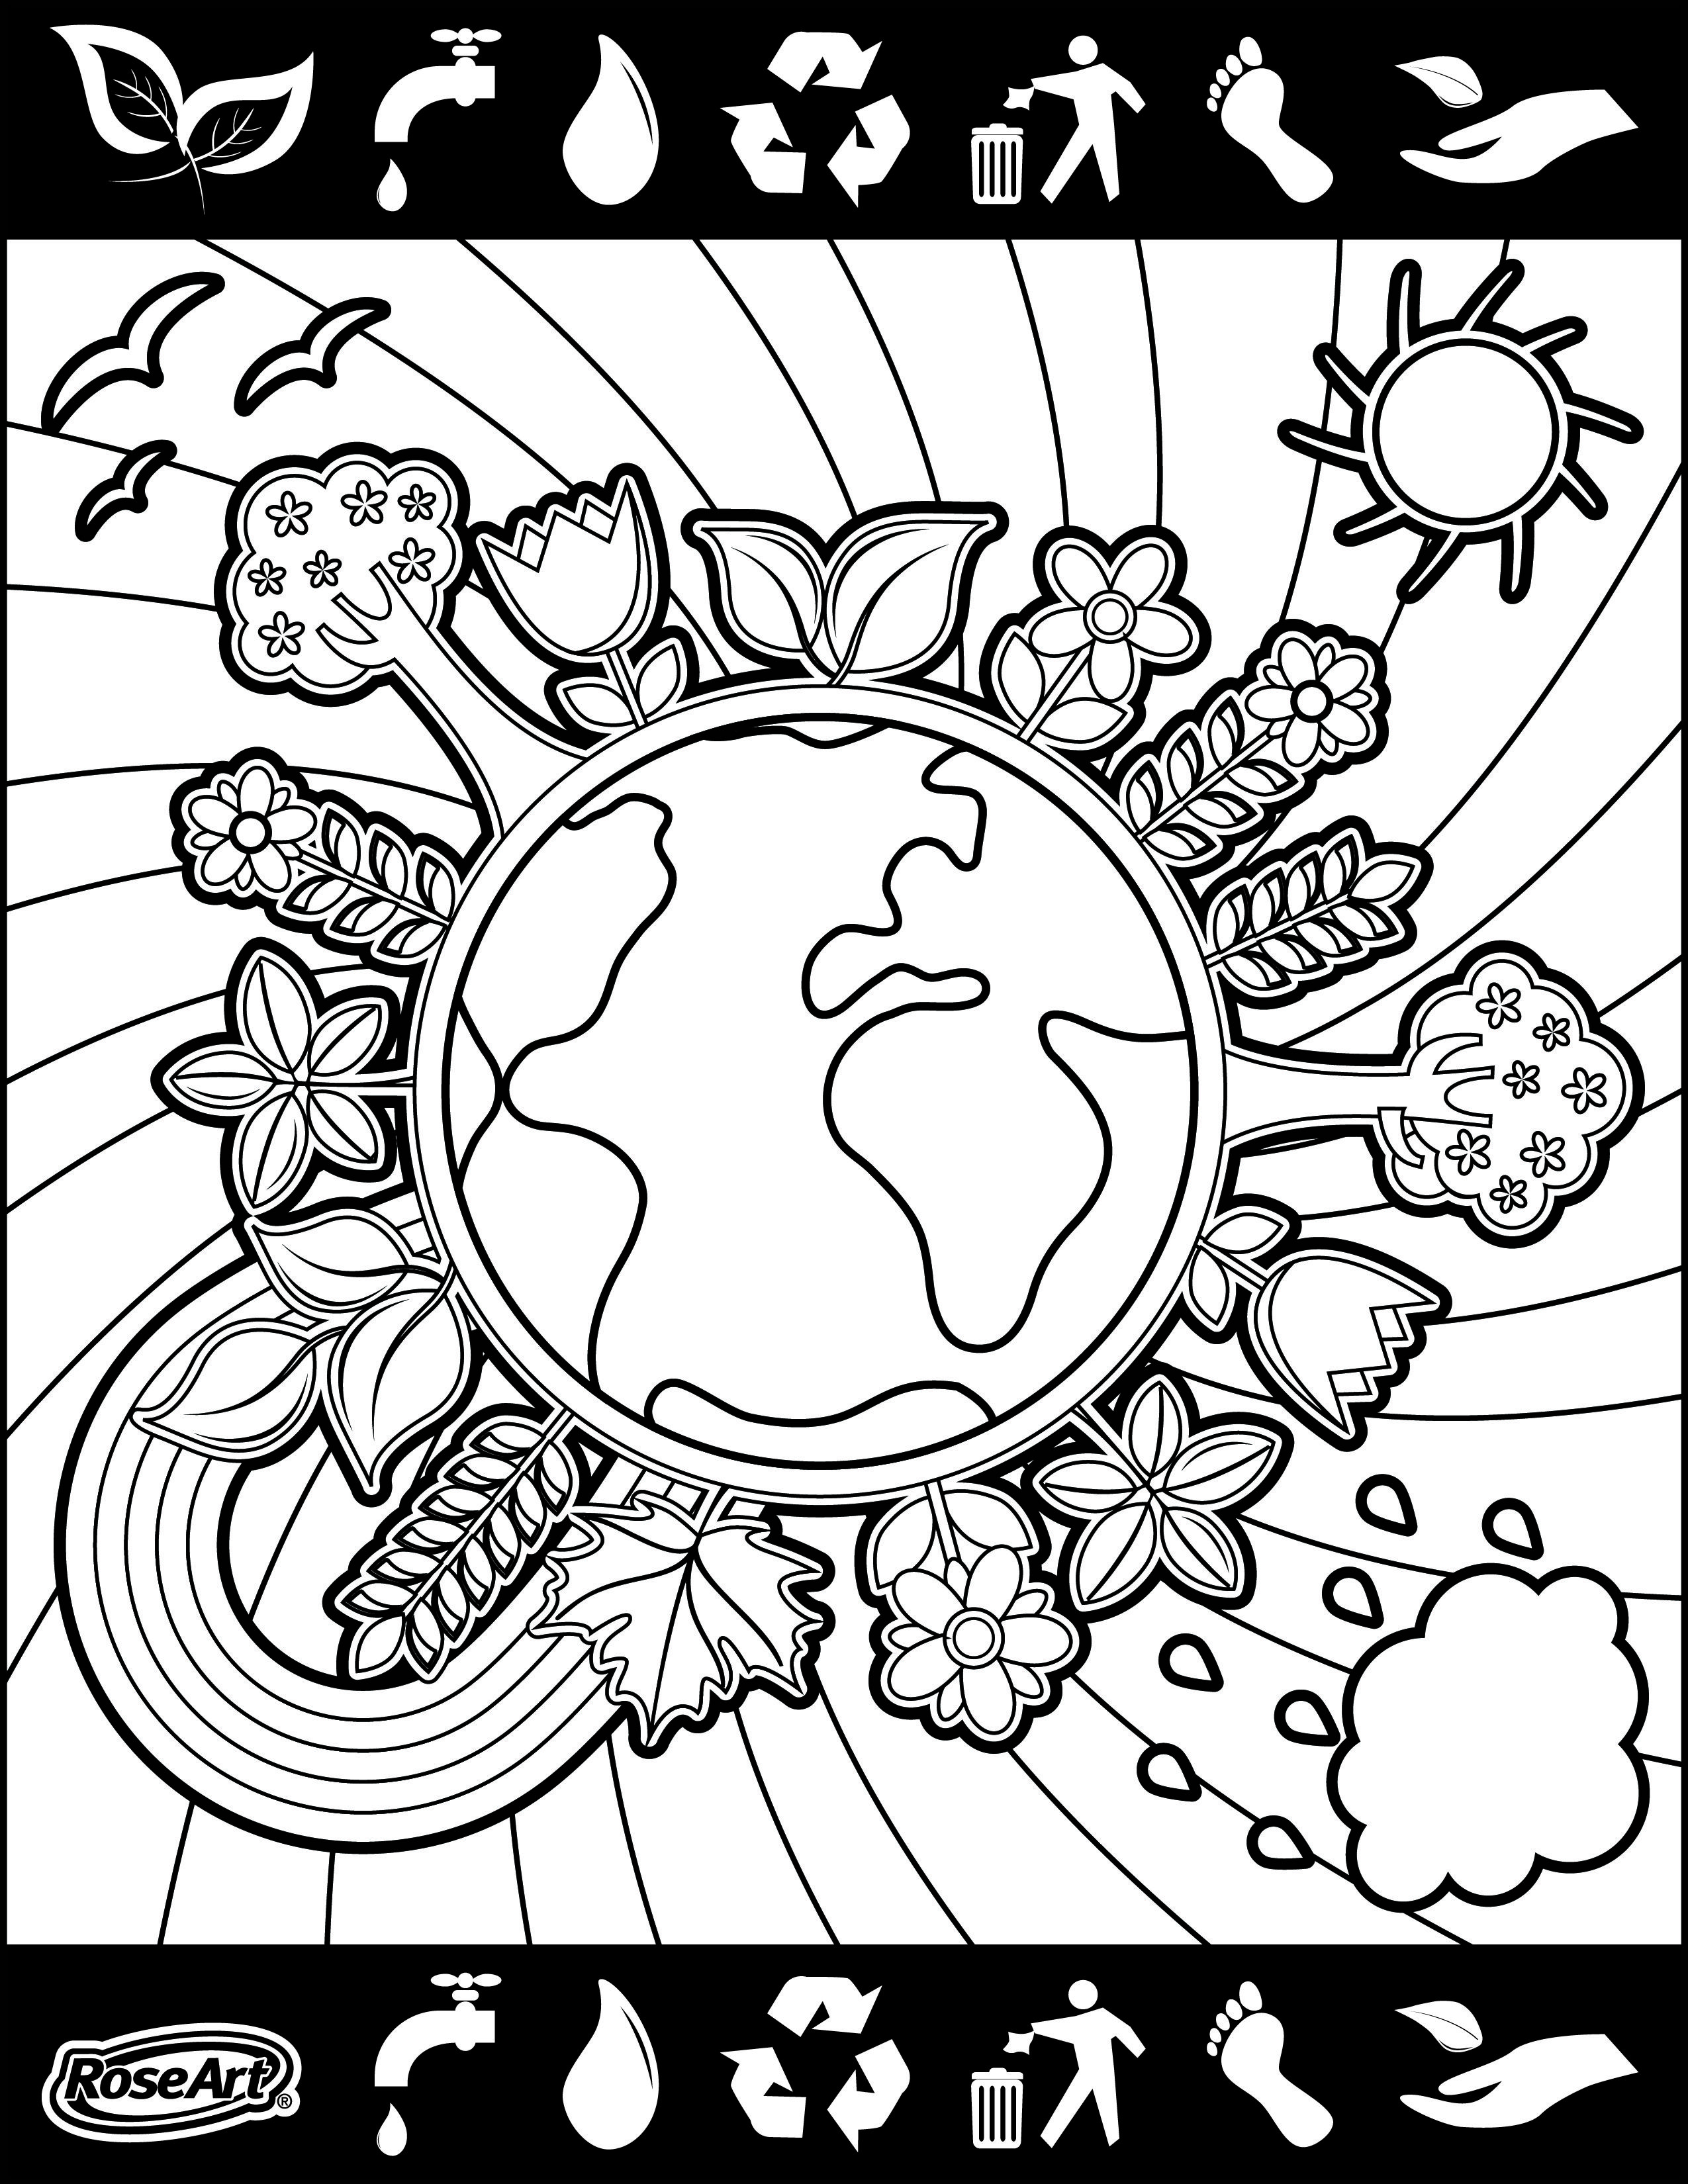 Environmental coloring activities - Coloring Pages Az Coloring Pages Environment Pictures For Kids